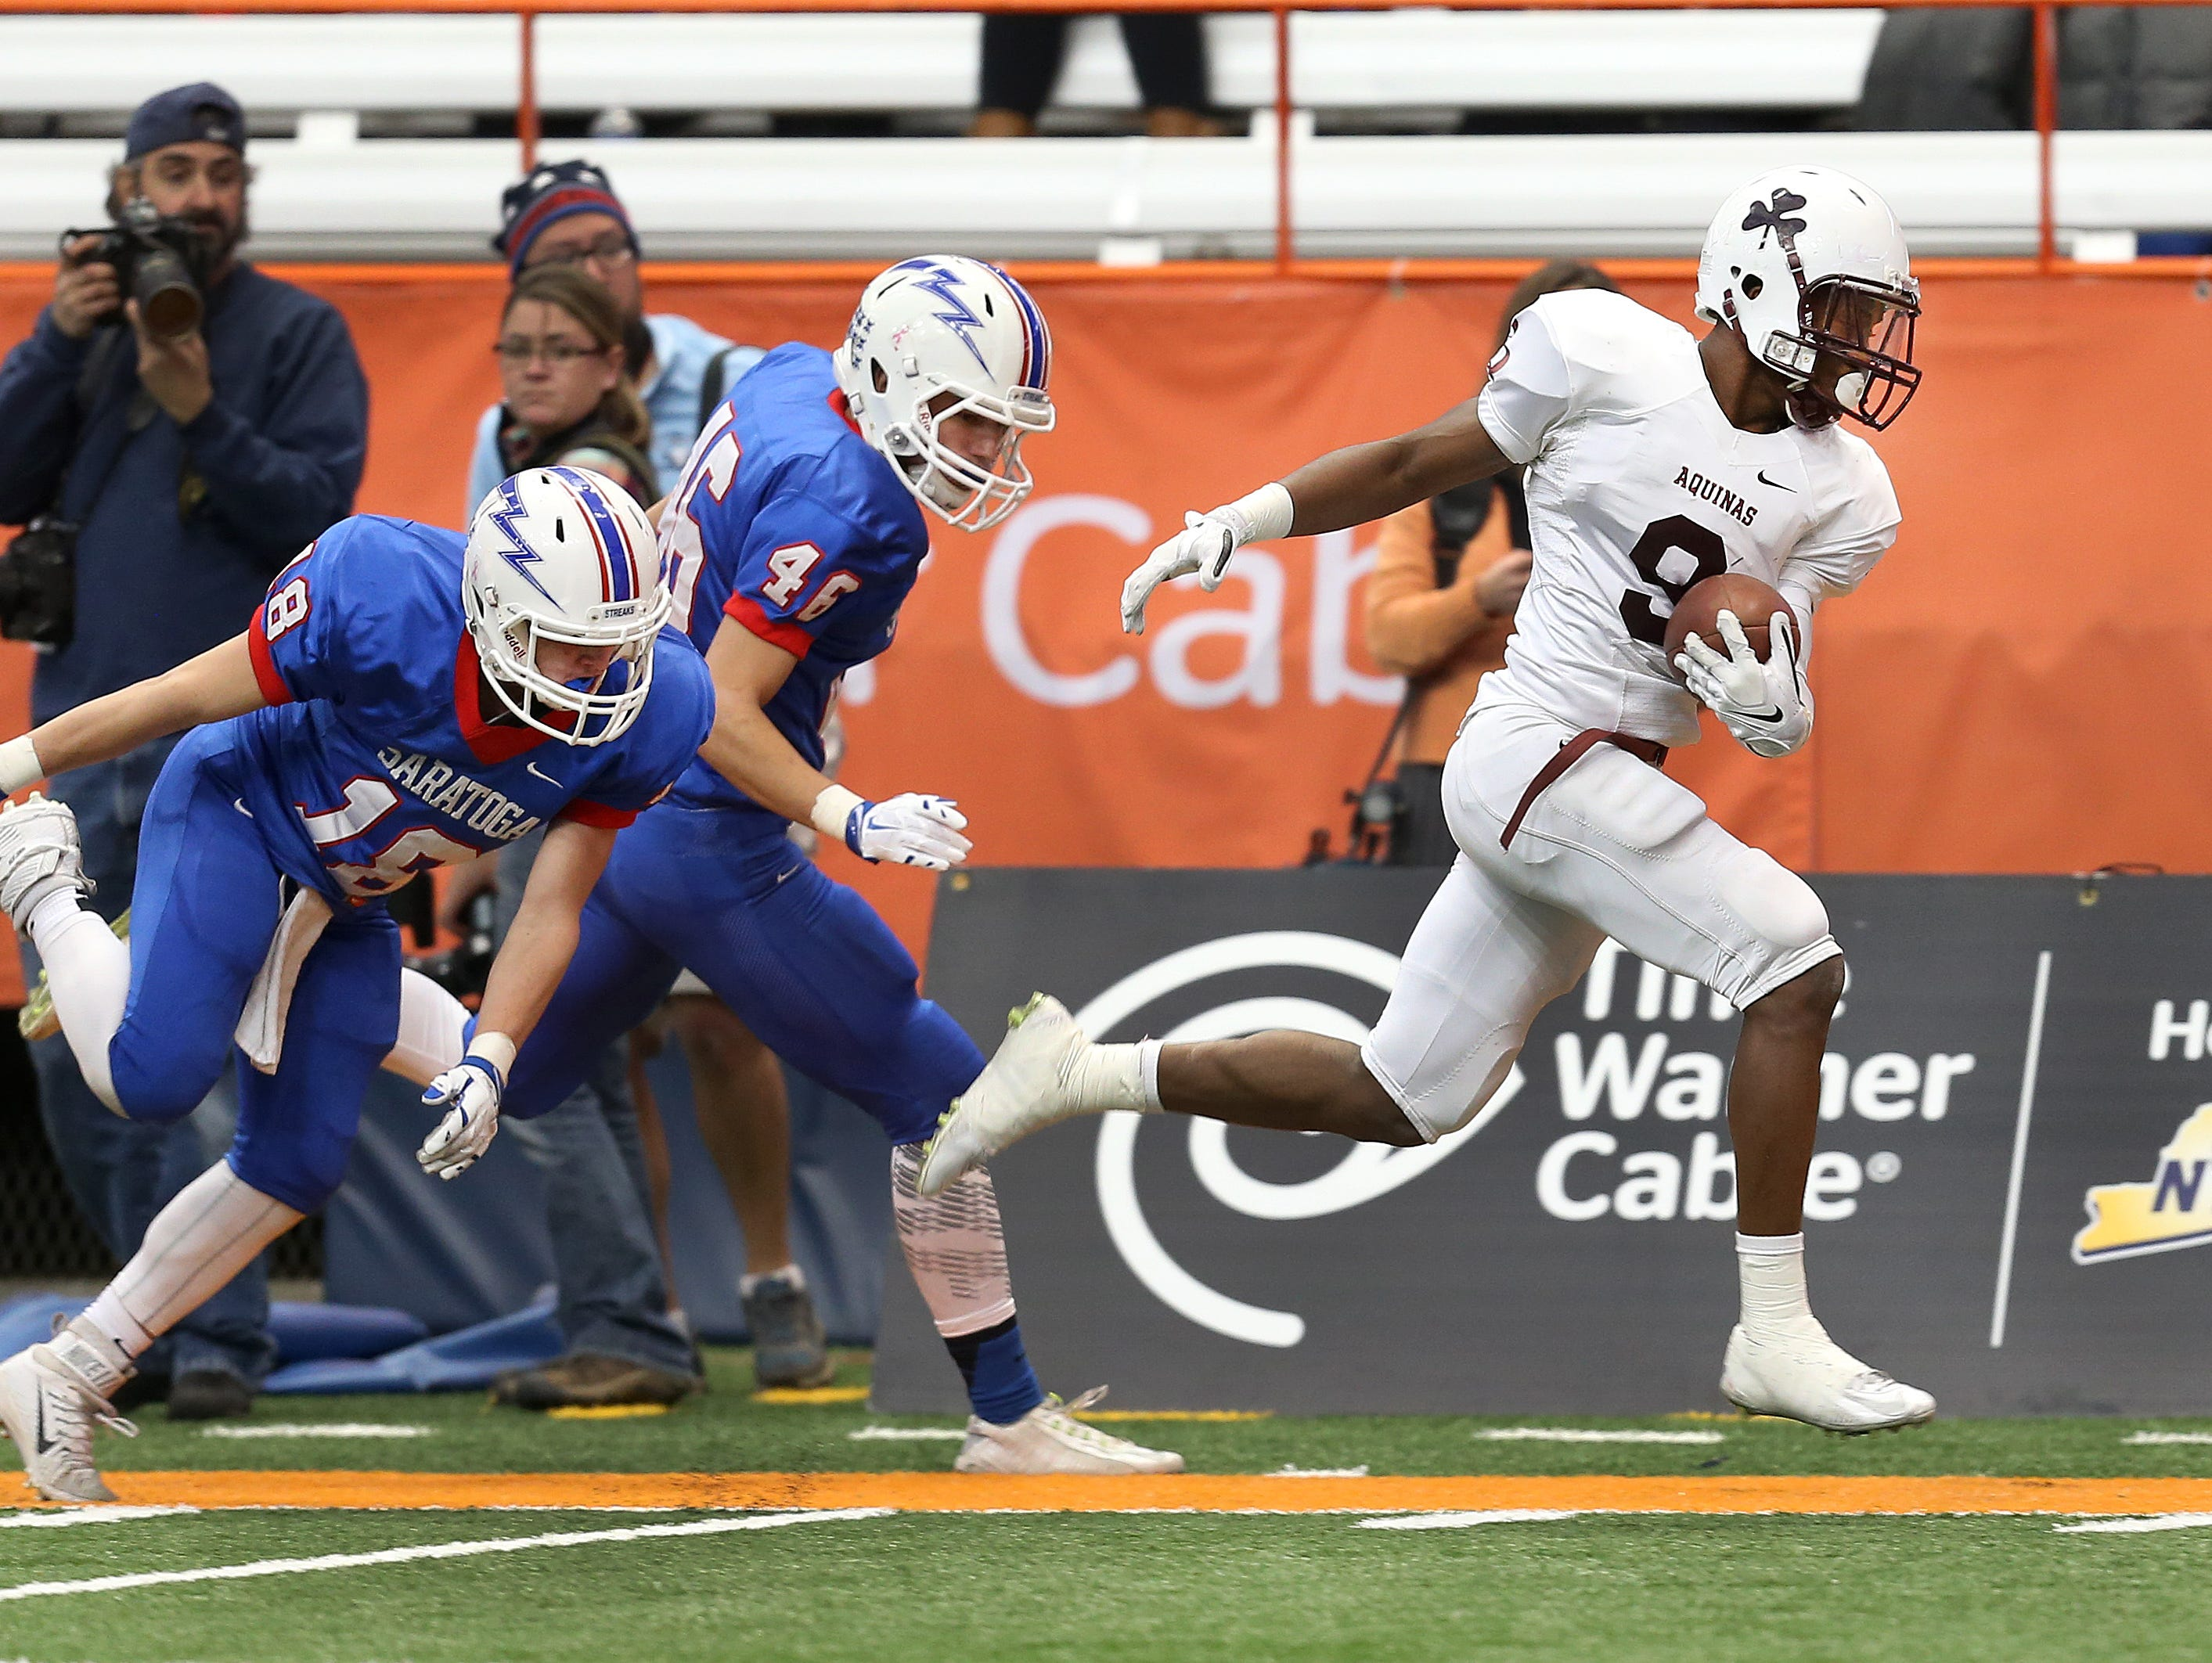 Aquinas receiver Earnest Edwards (9) scores a touchdown on a long pass against Saratoga Springs. Edwards scored 4 TDs in a 44-19 win.